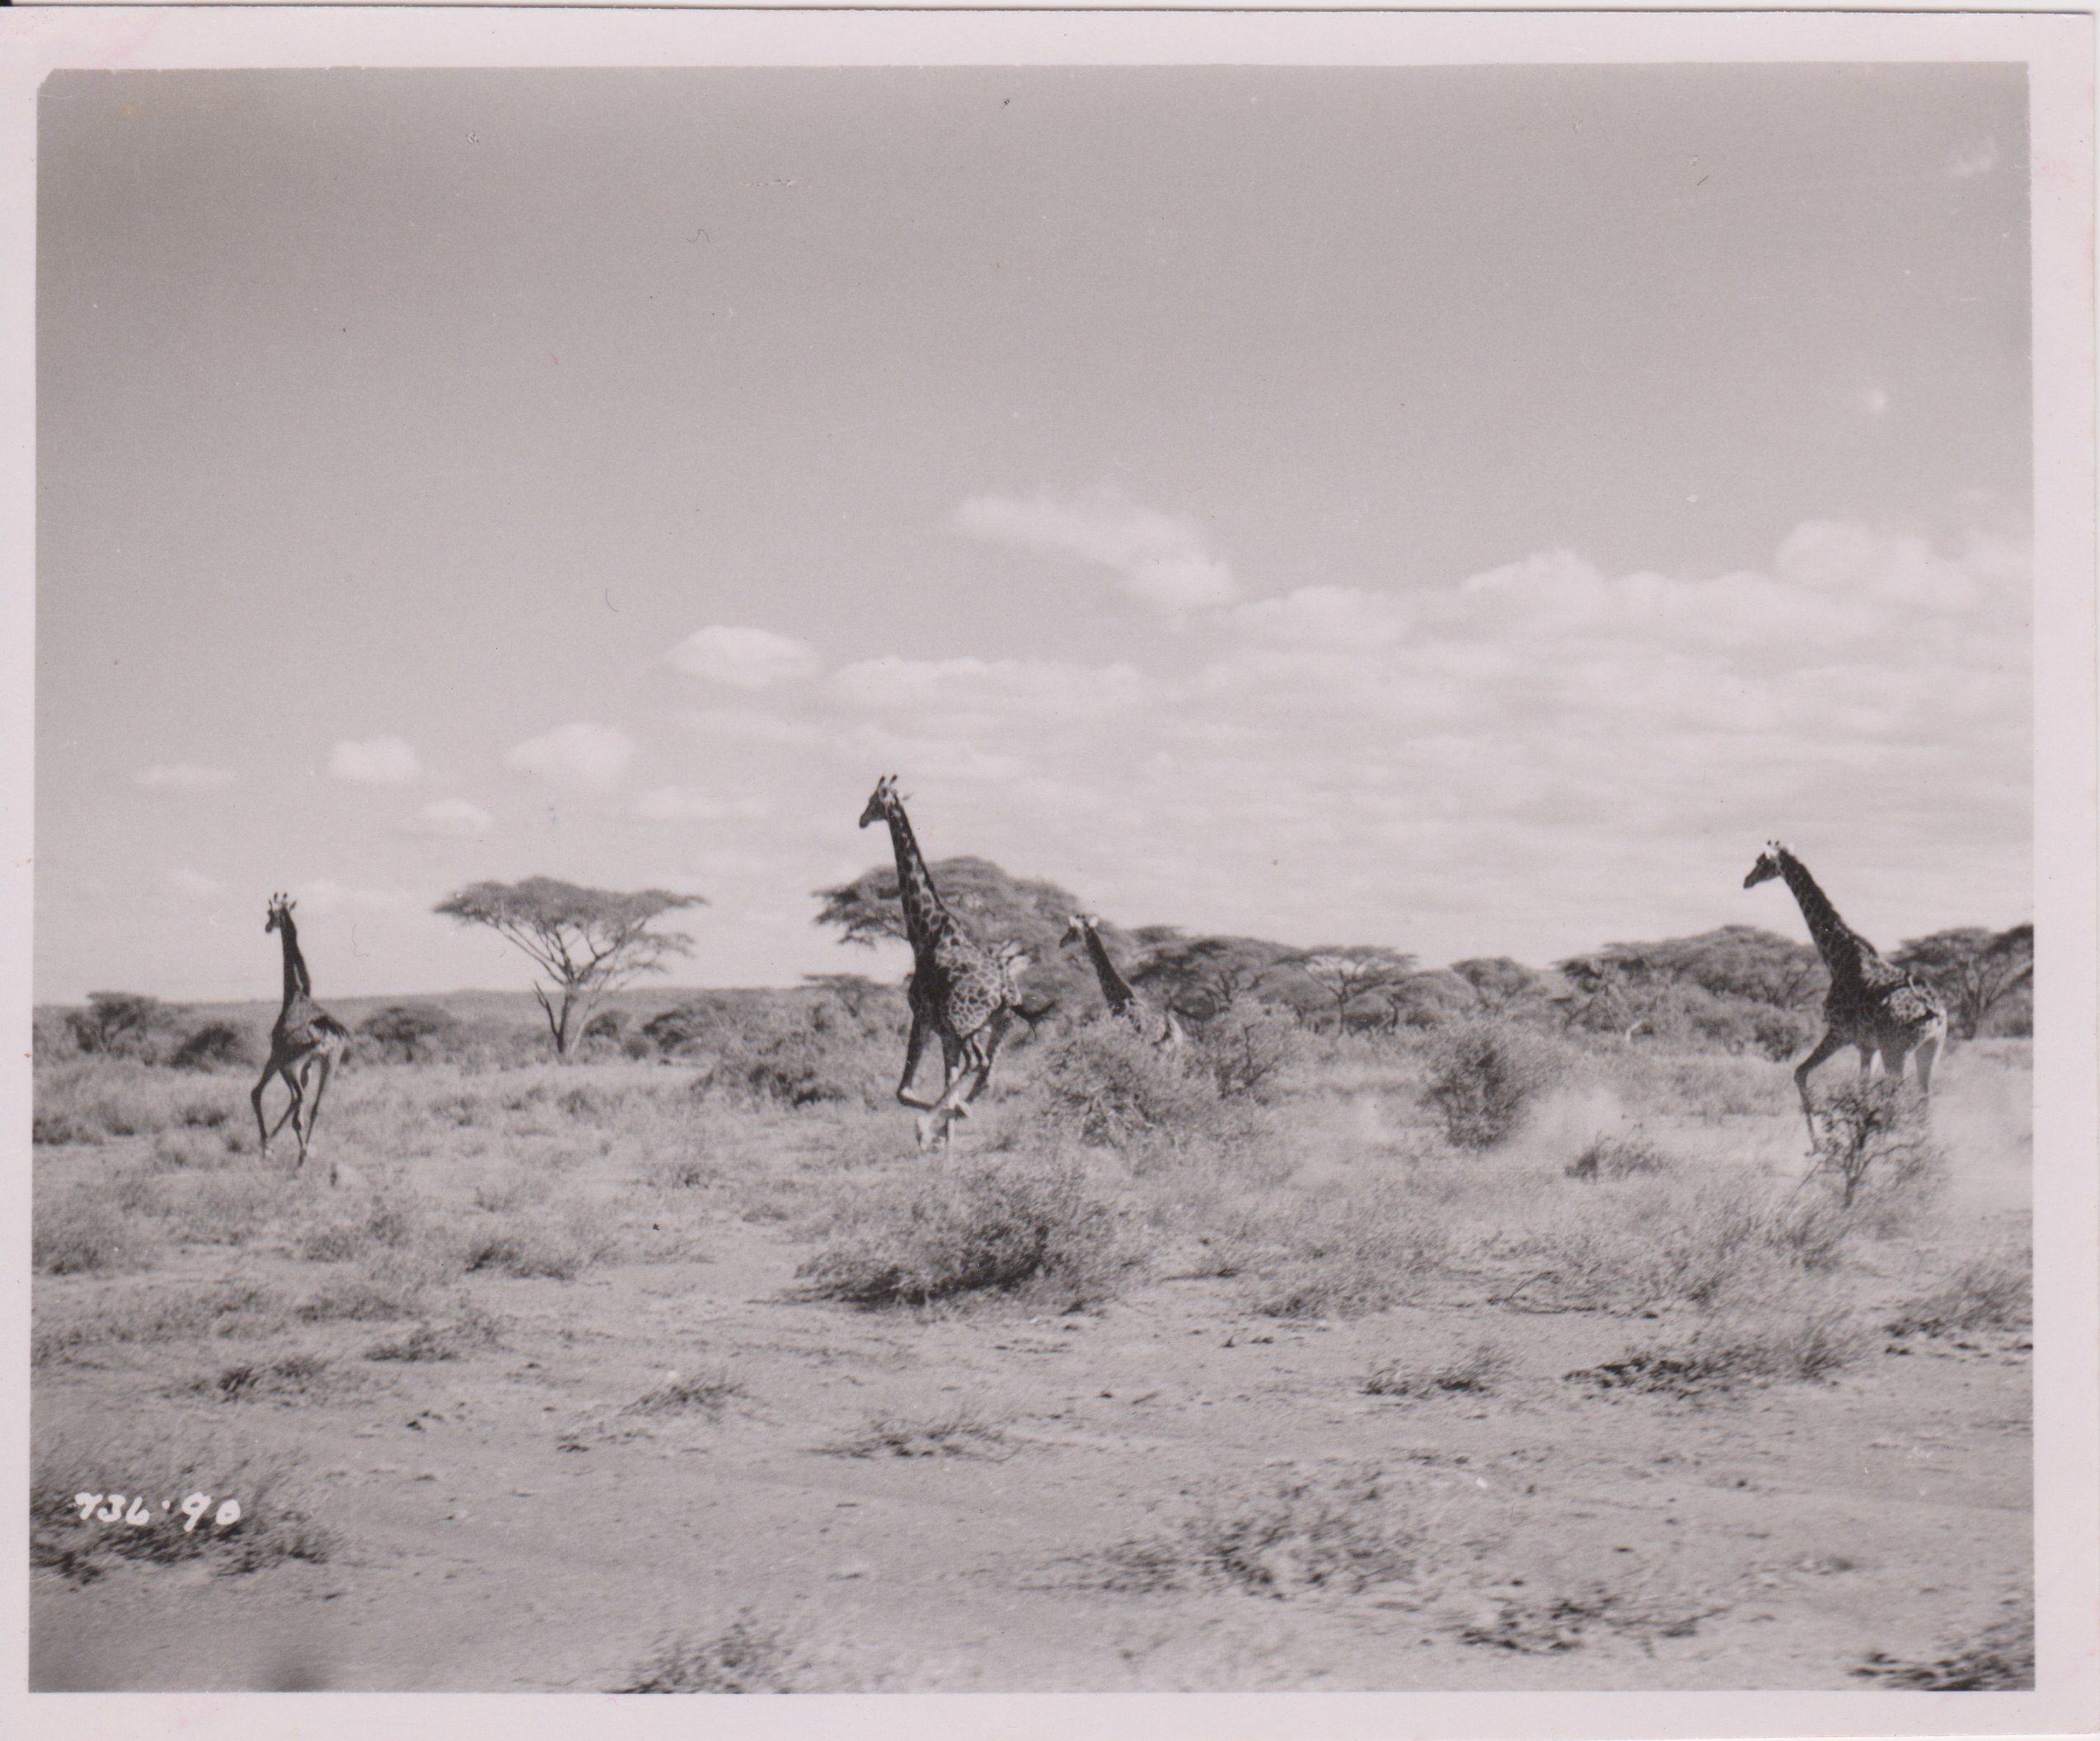 Photos of 1940s Tanzania - stills from the film Men of Two Worlds - Gane and Marshall Travel Blog